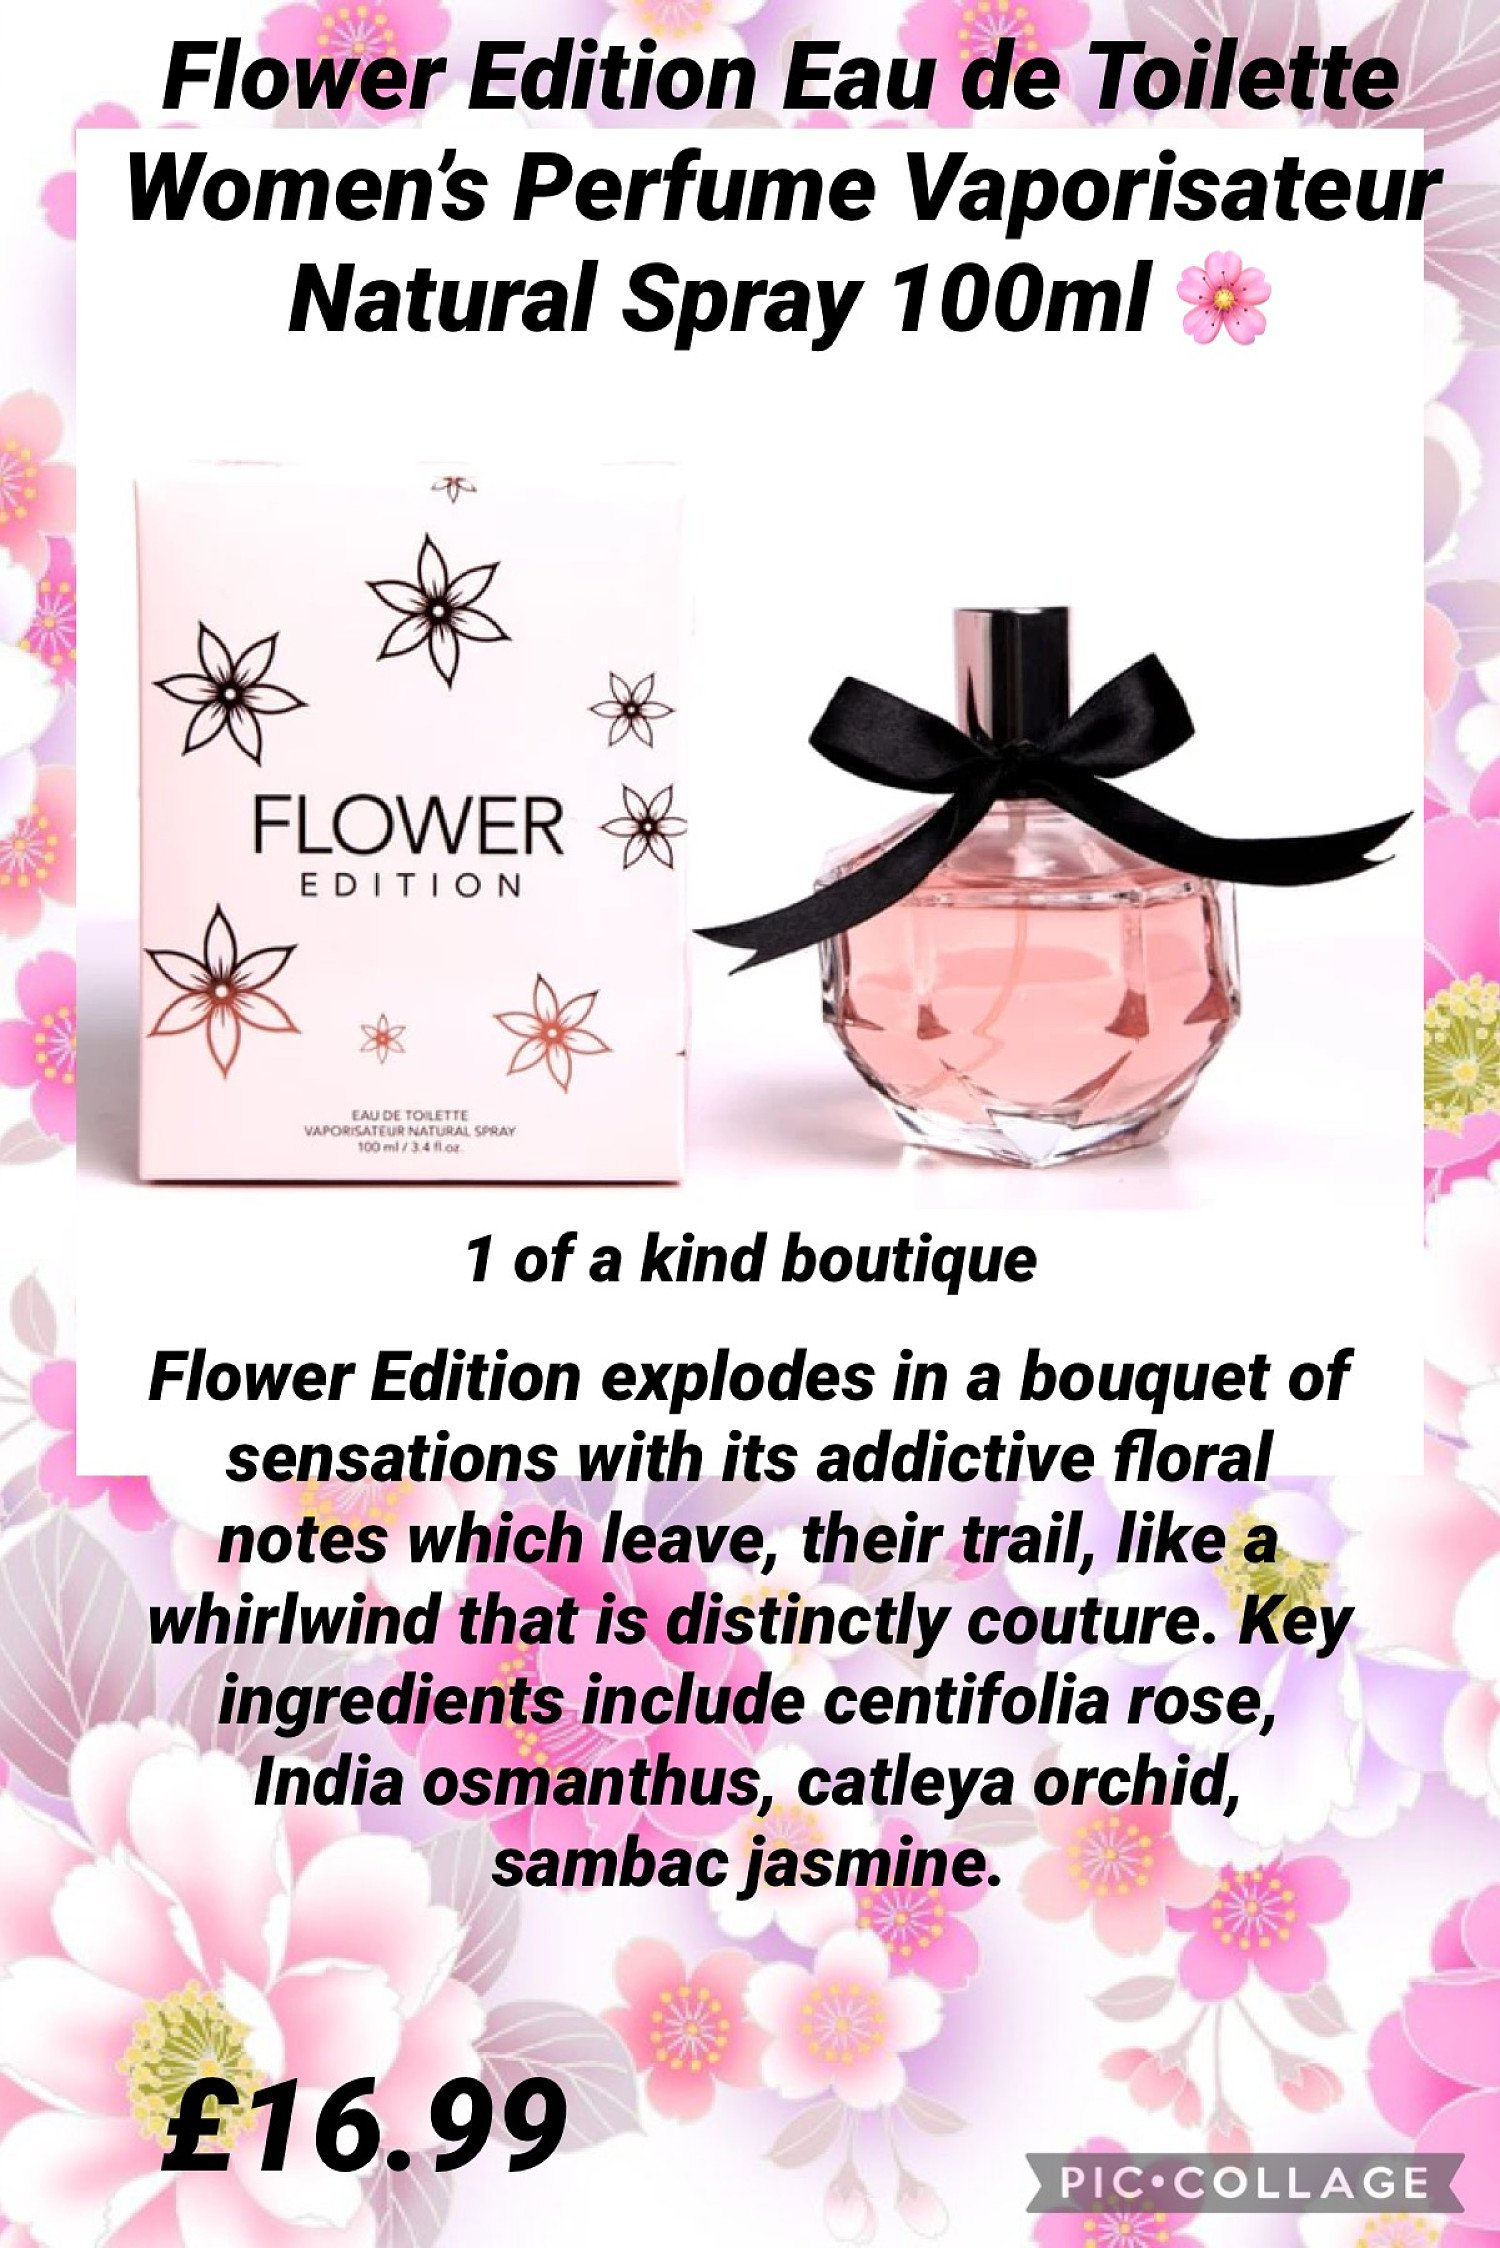 Flower Edition Eau de Toilette Women's Perfume Vaporisateur Natural Spray 100ml Free Postage